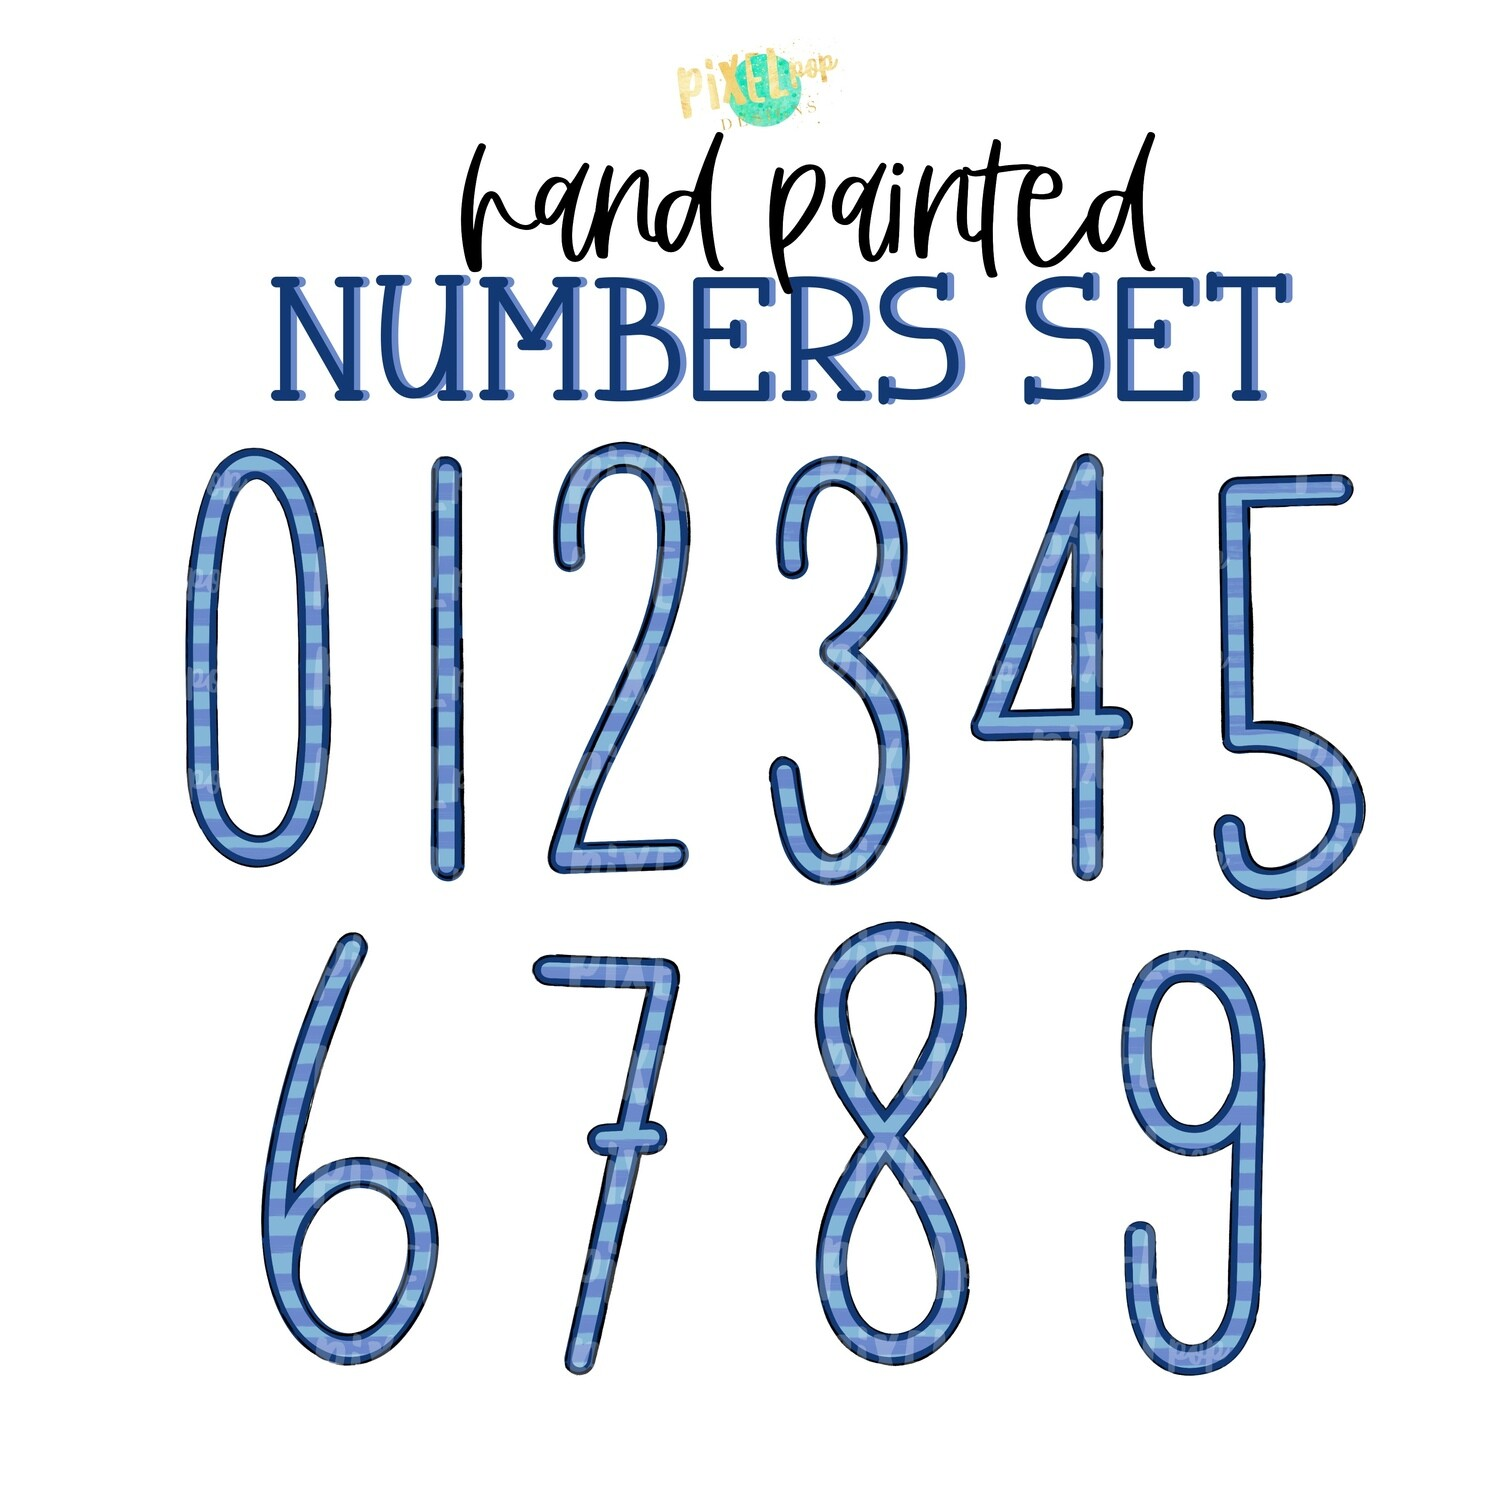 Blue Stripe Hand Painted Numbers PNG Set of 10 | Number Set | Sublimation Doodle Numbers | Print and Press Transfer Numbers Set